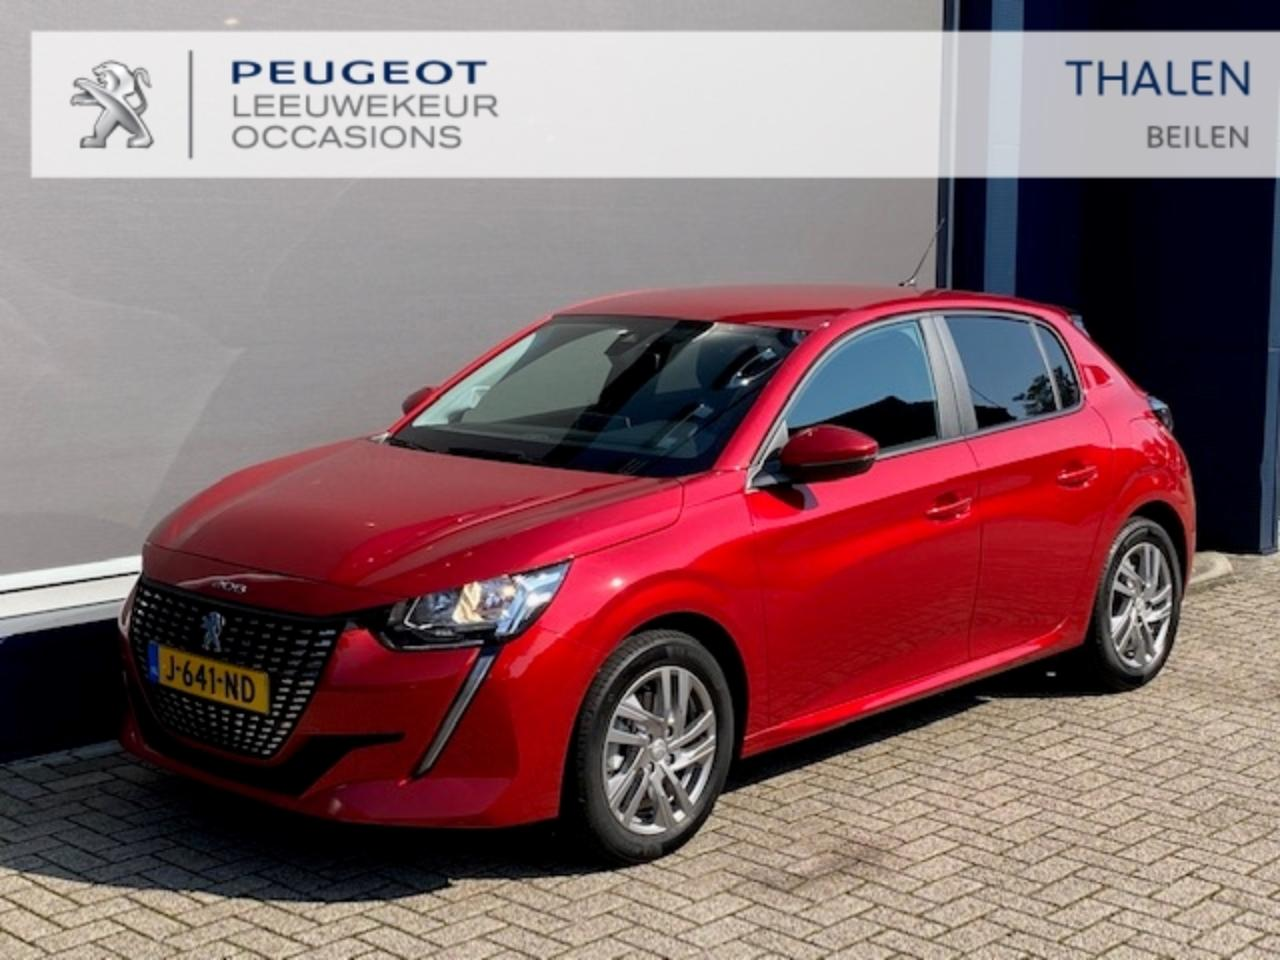 Peugeot 208 DEMO 100 PK TURBO CAMERA/PDC/EXTRA GETINT GLAS/LM